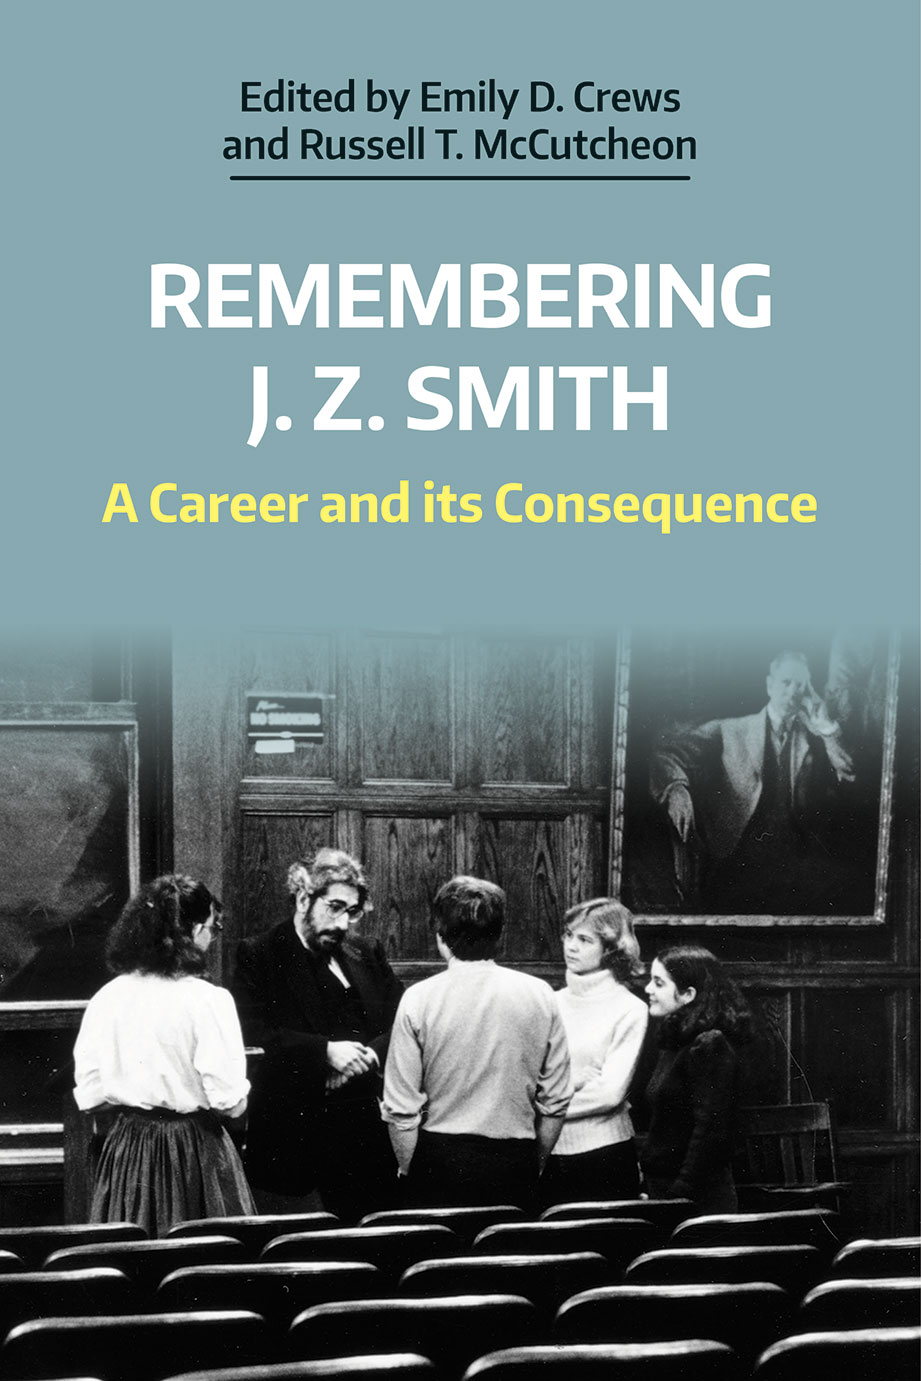 Remembering J. Z. Smith - A Career and its Consequence - Emily D. Crews